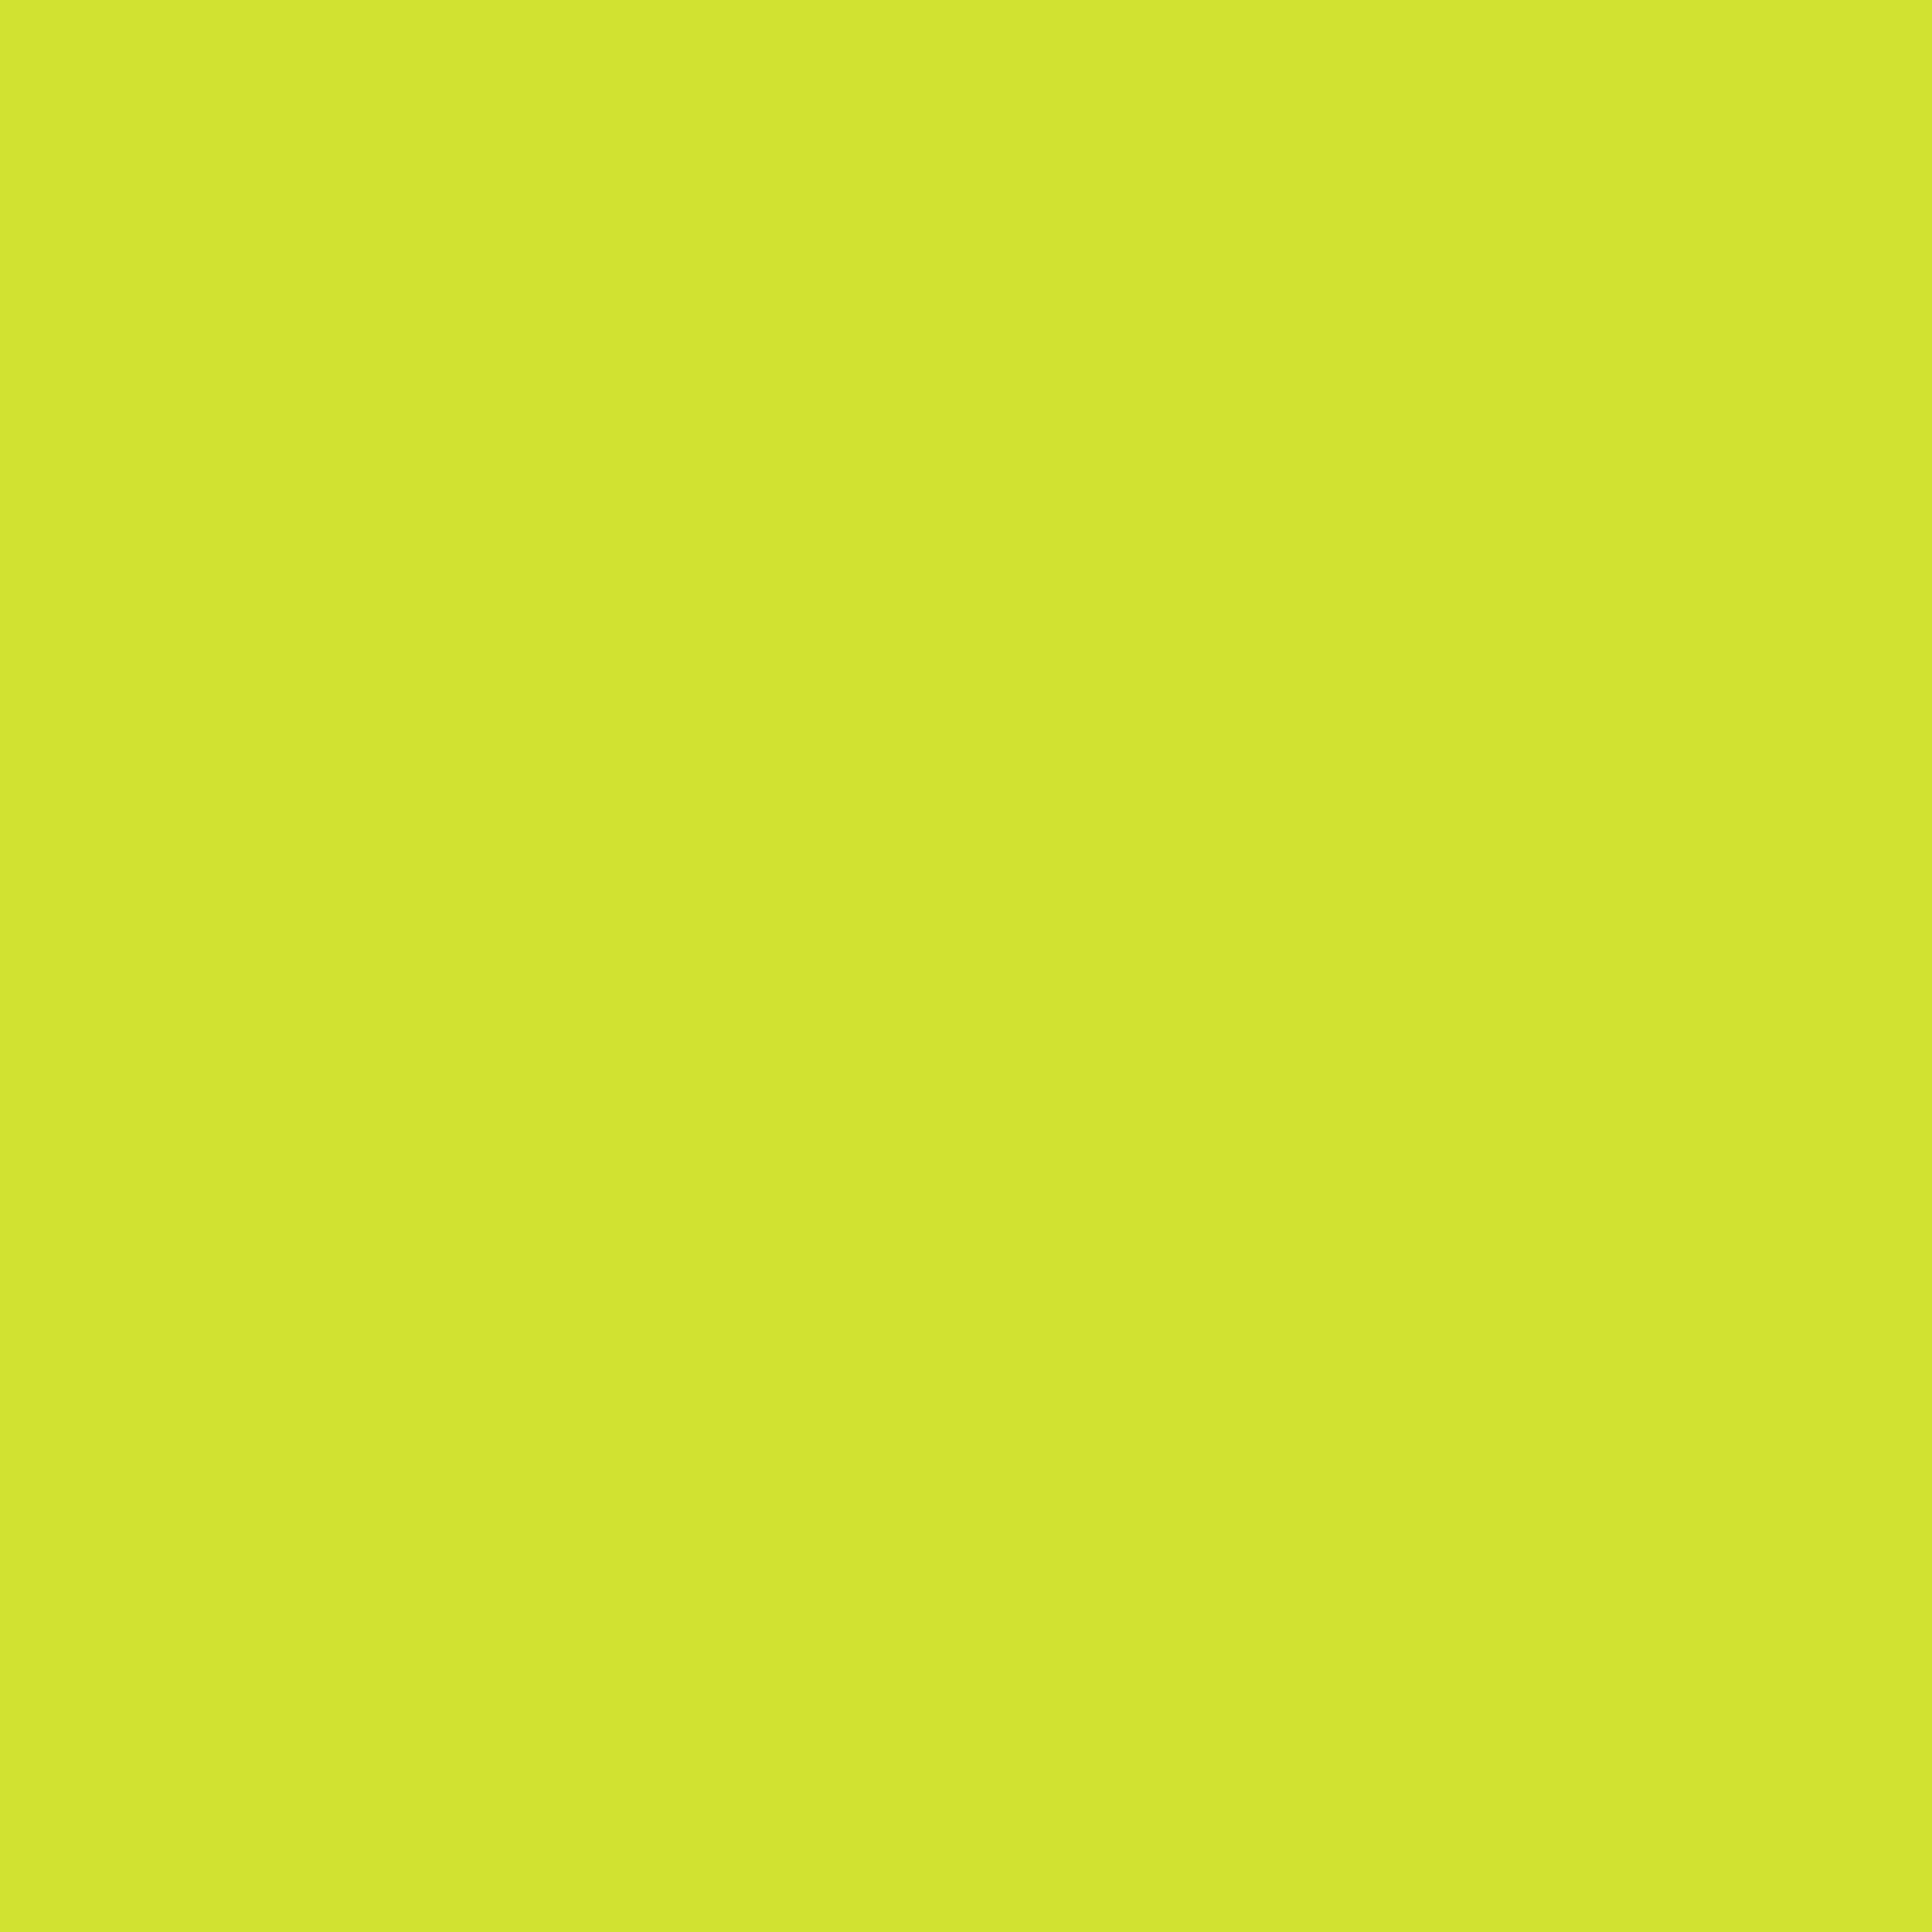 2732x2732 Pear Solid Color Background